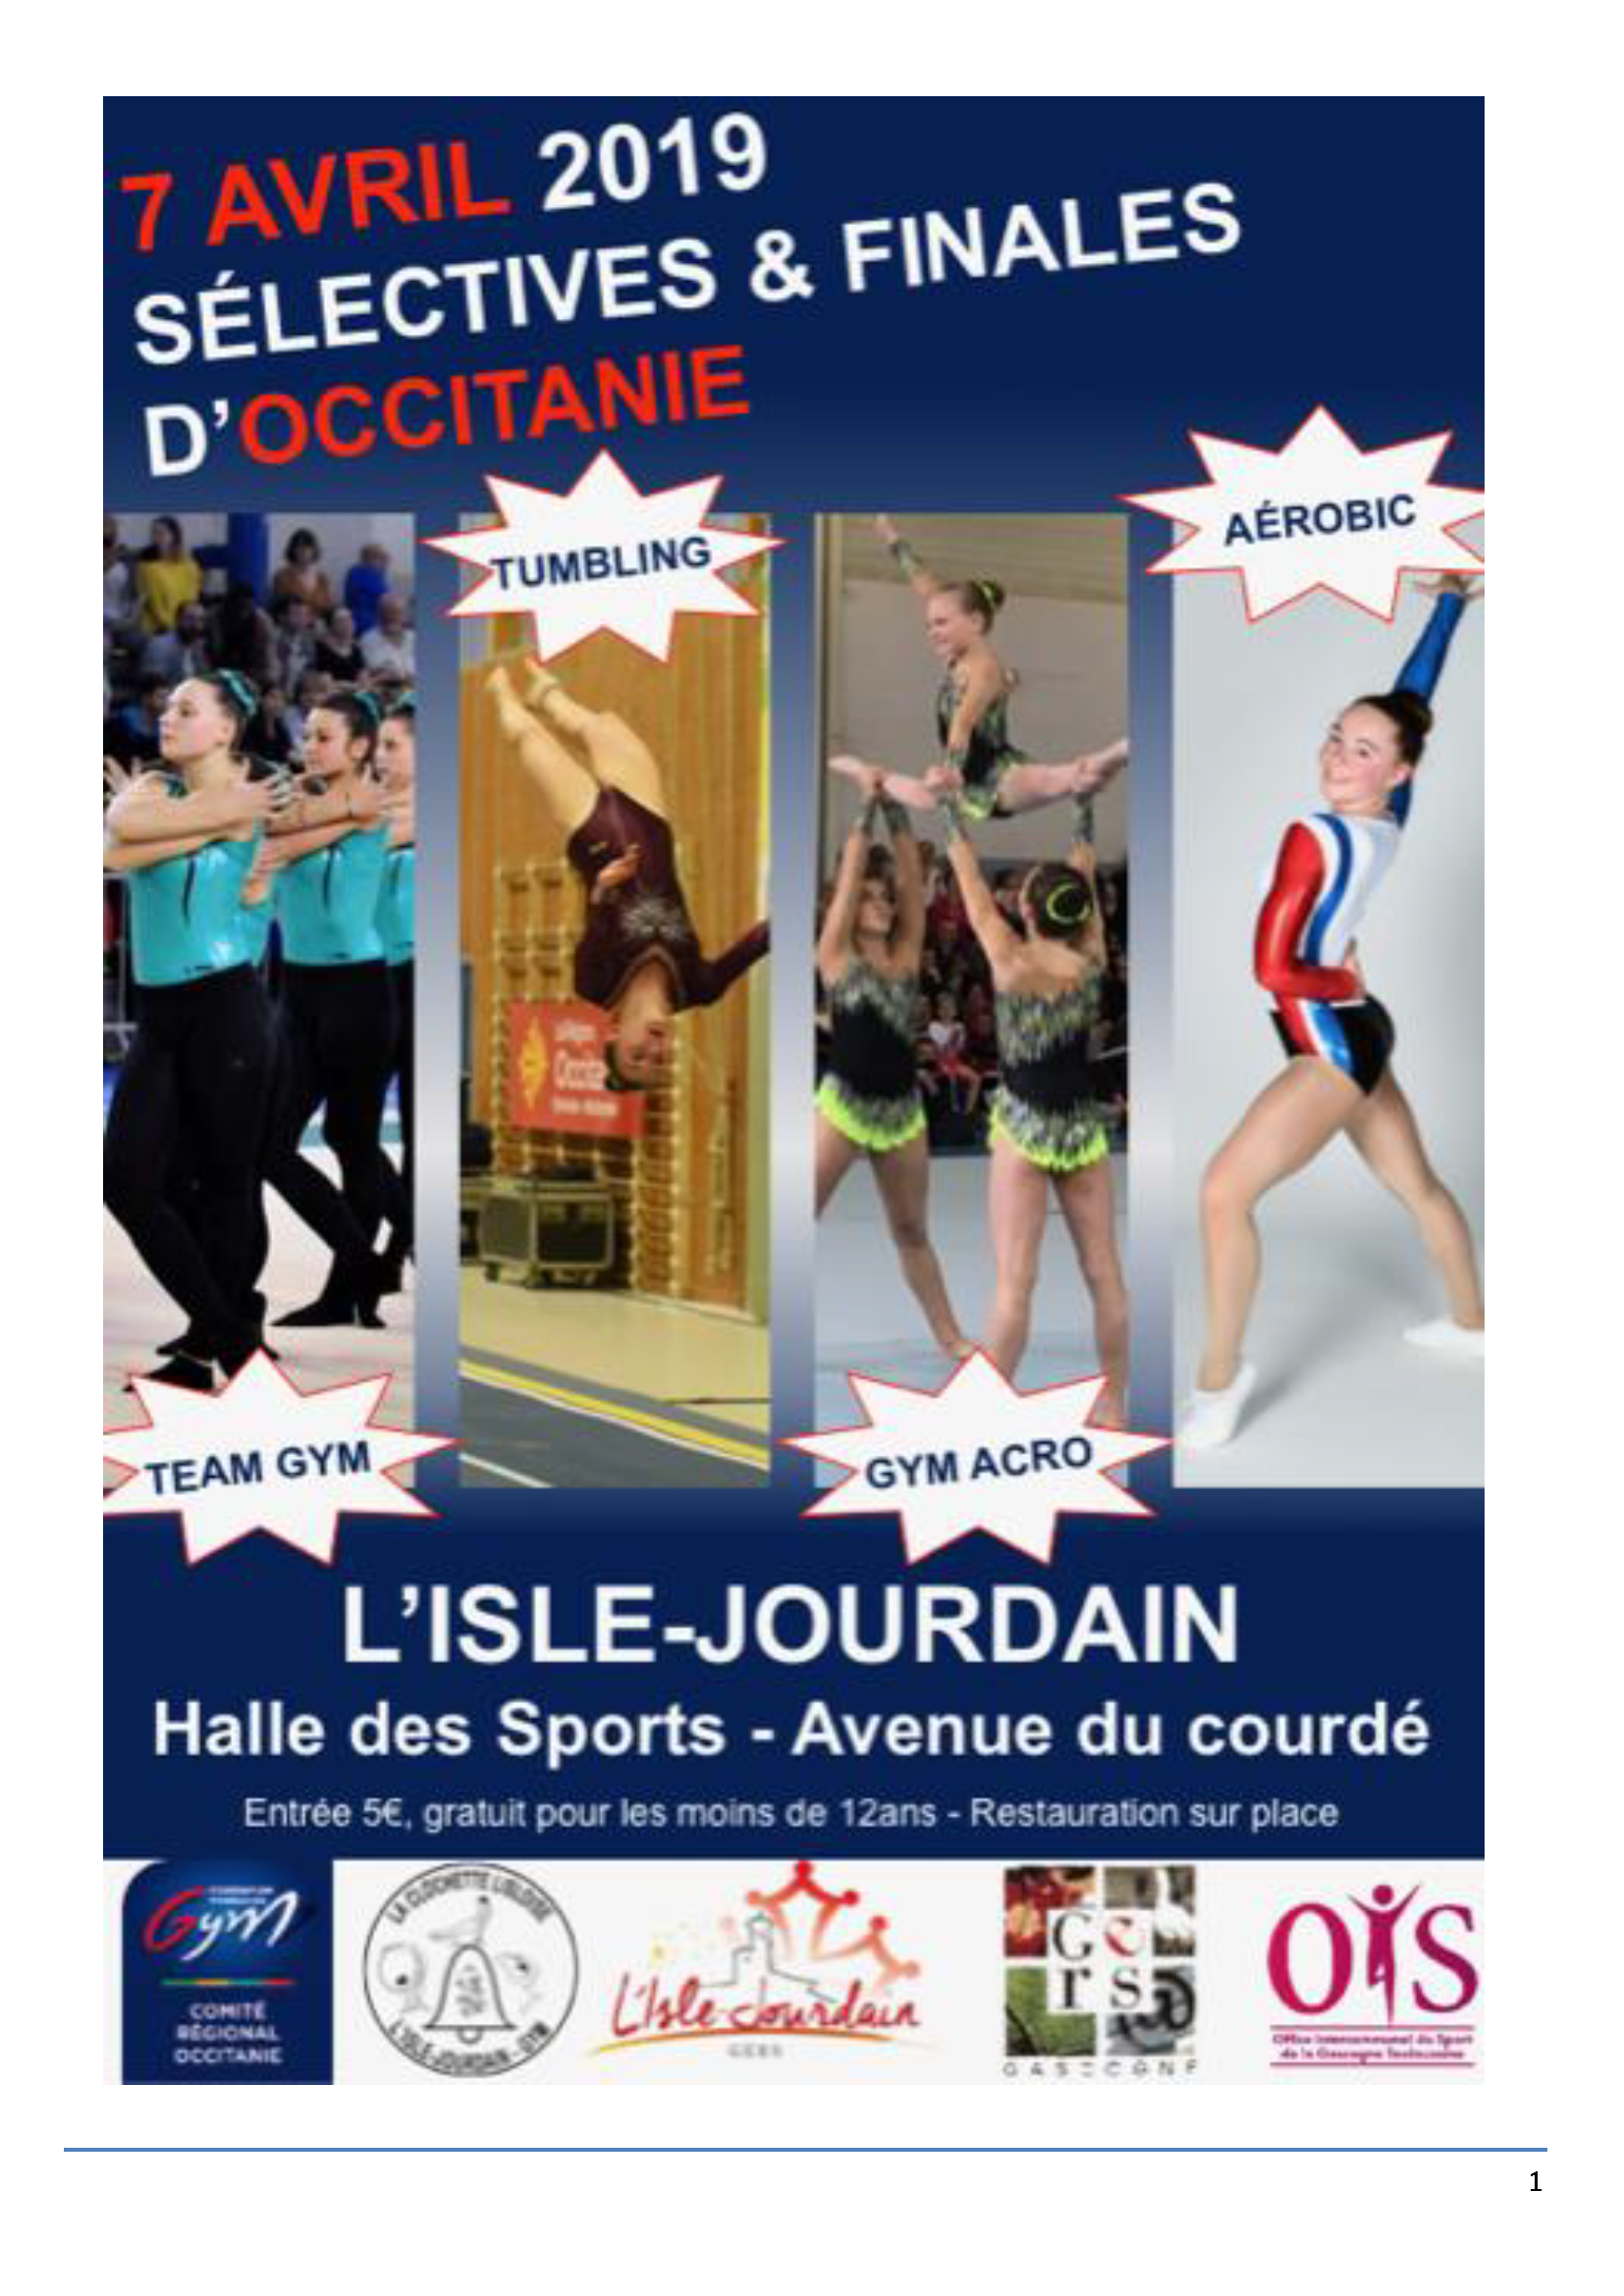 TUMBLING AVRIL 2019 L'ISLE JOURDAIN